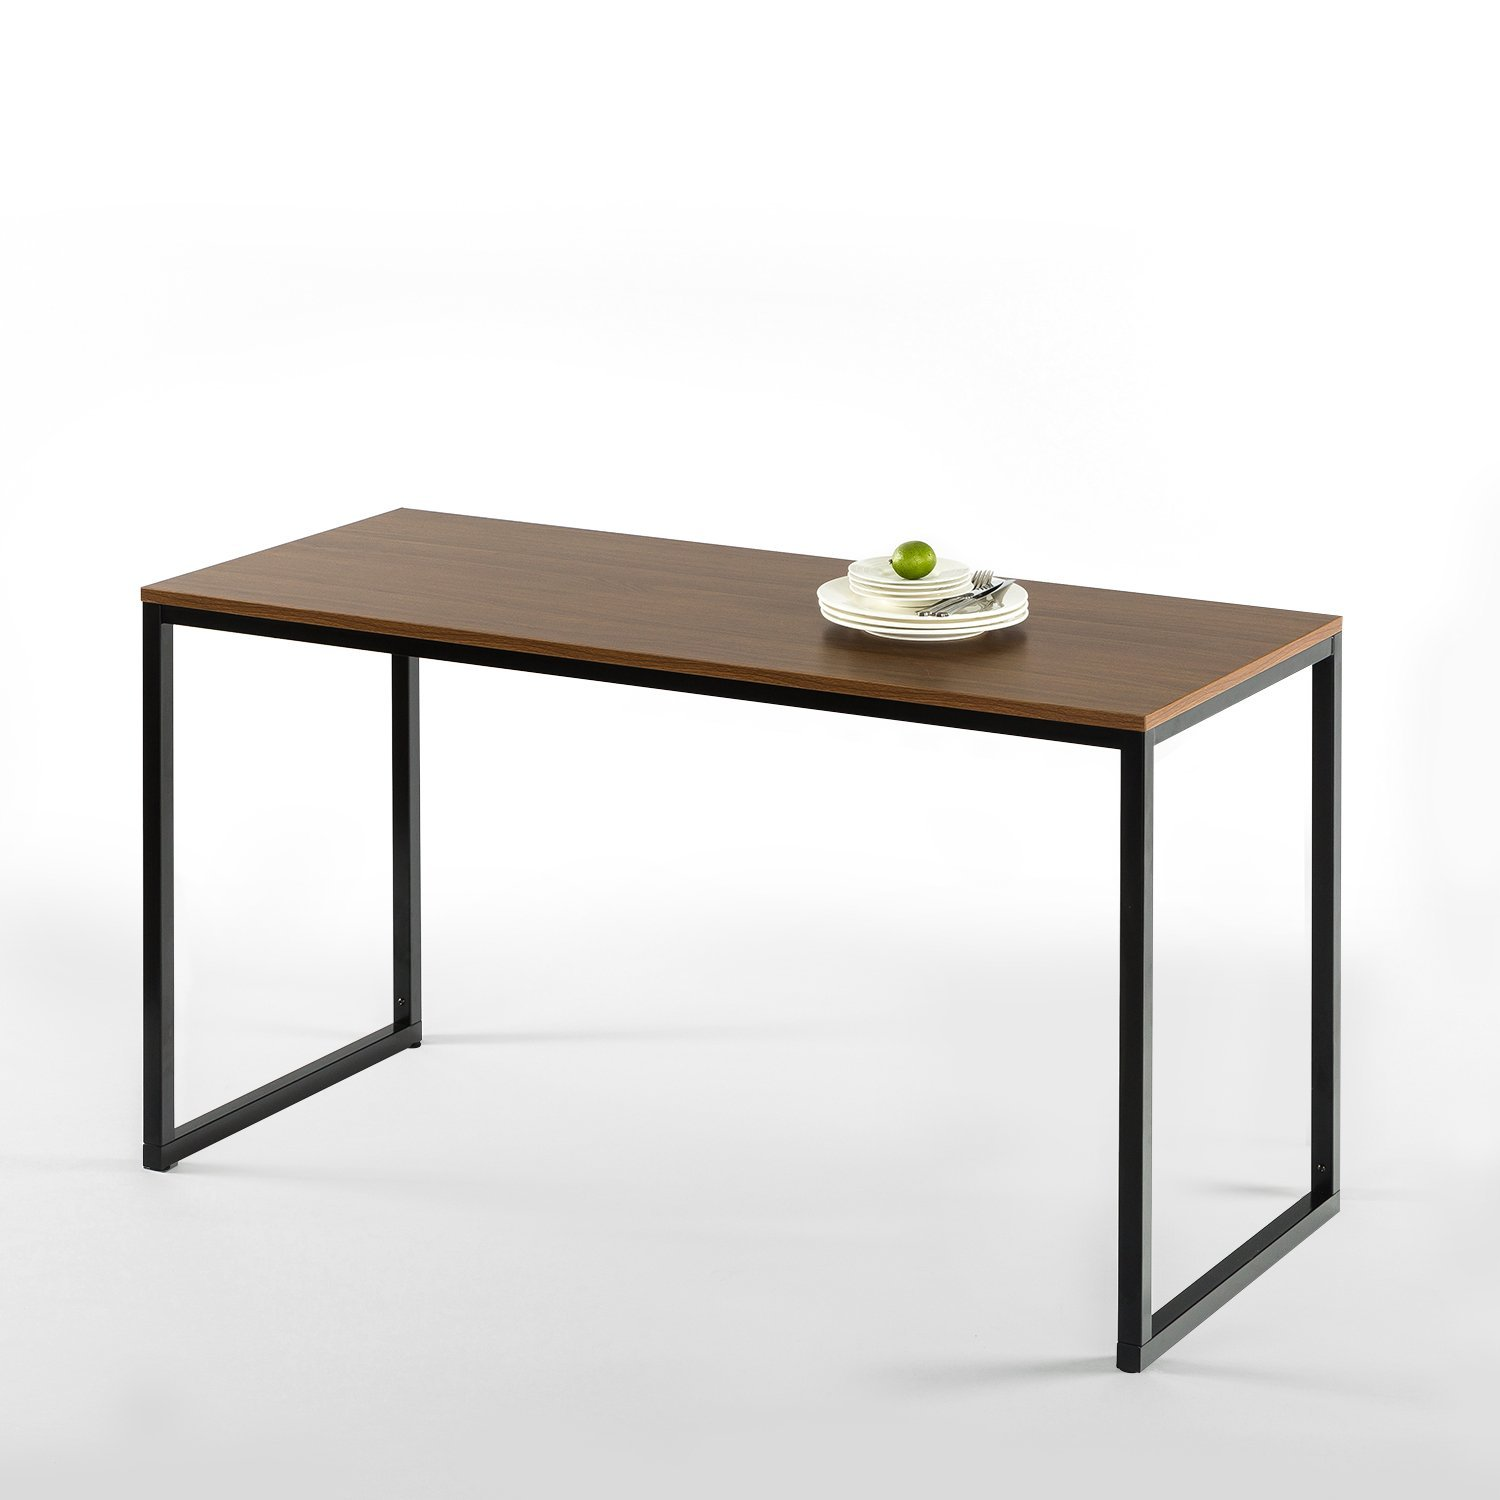 Zinus Jennifer Modern Studio Collection Soho Rectangular Dining Table / Table Only / Office Desk / Computer Table, Natural by Zinus